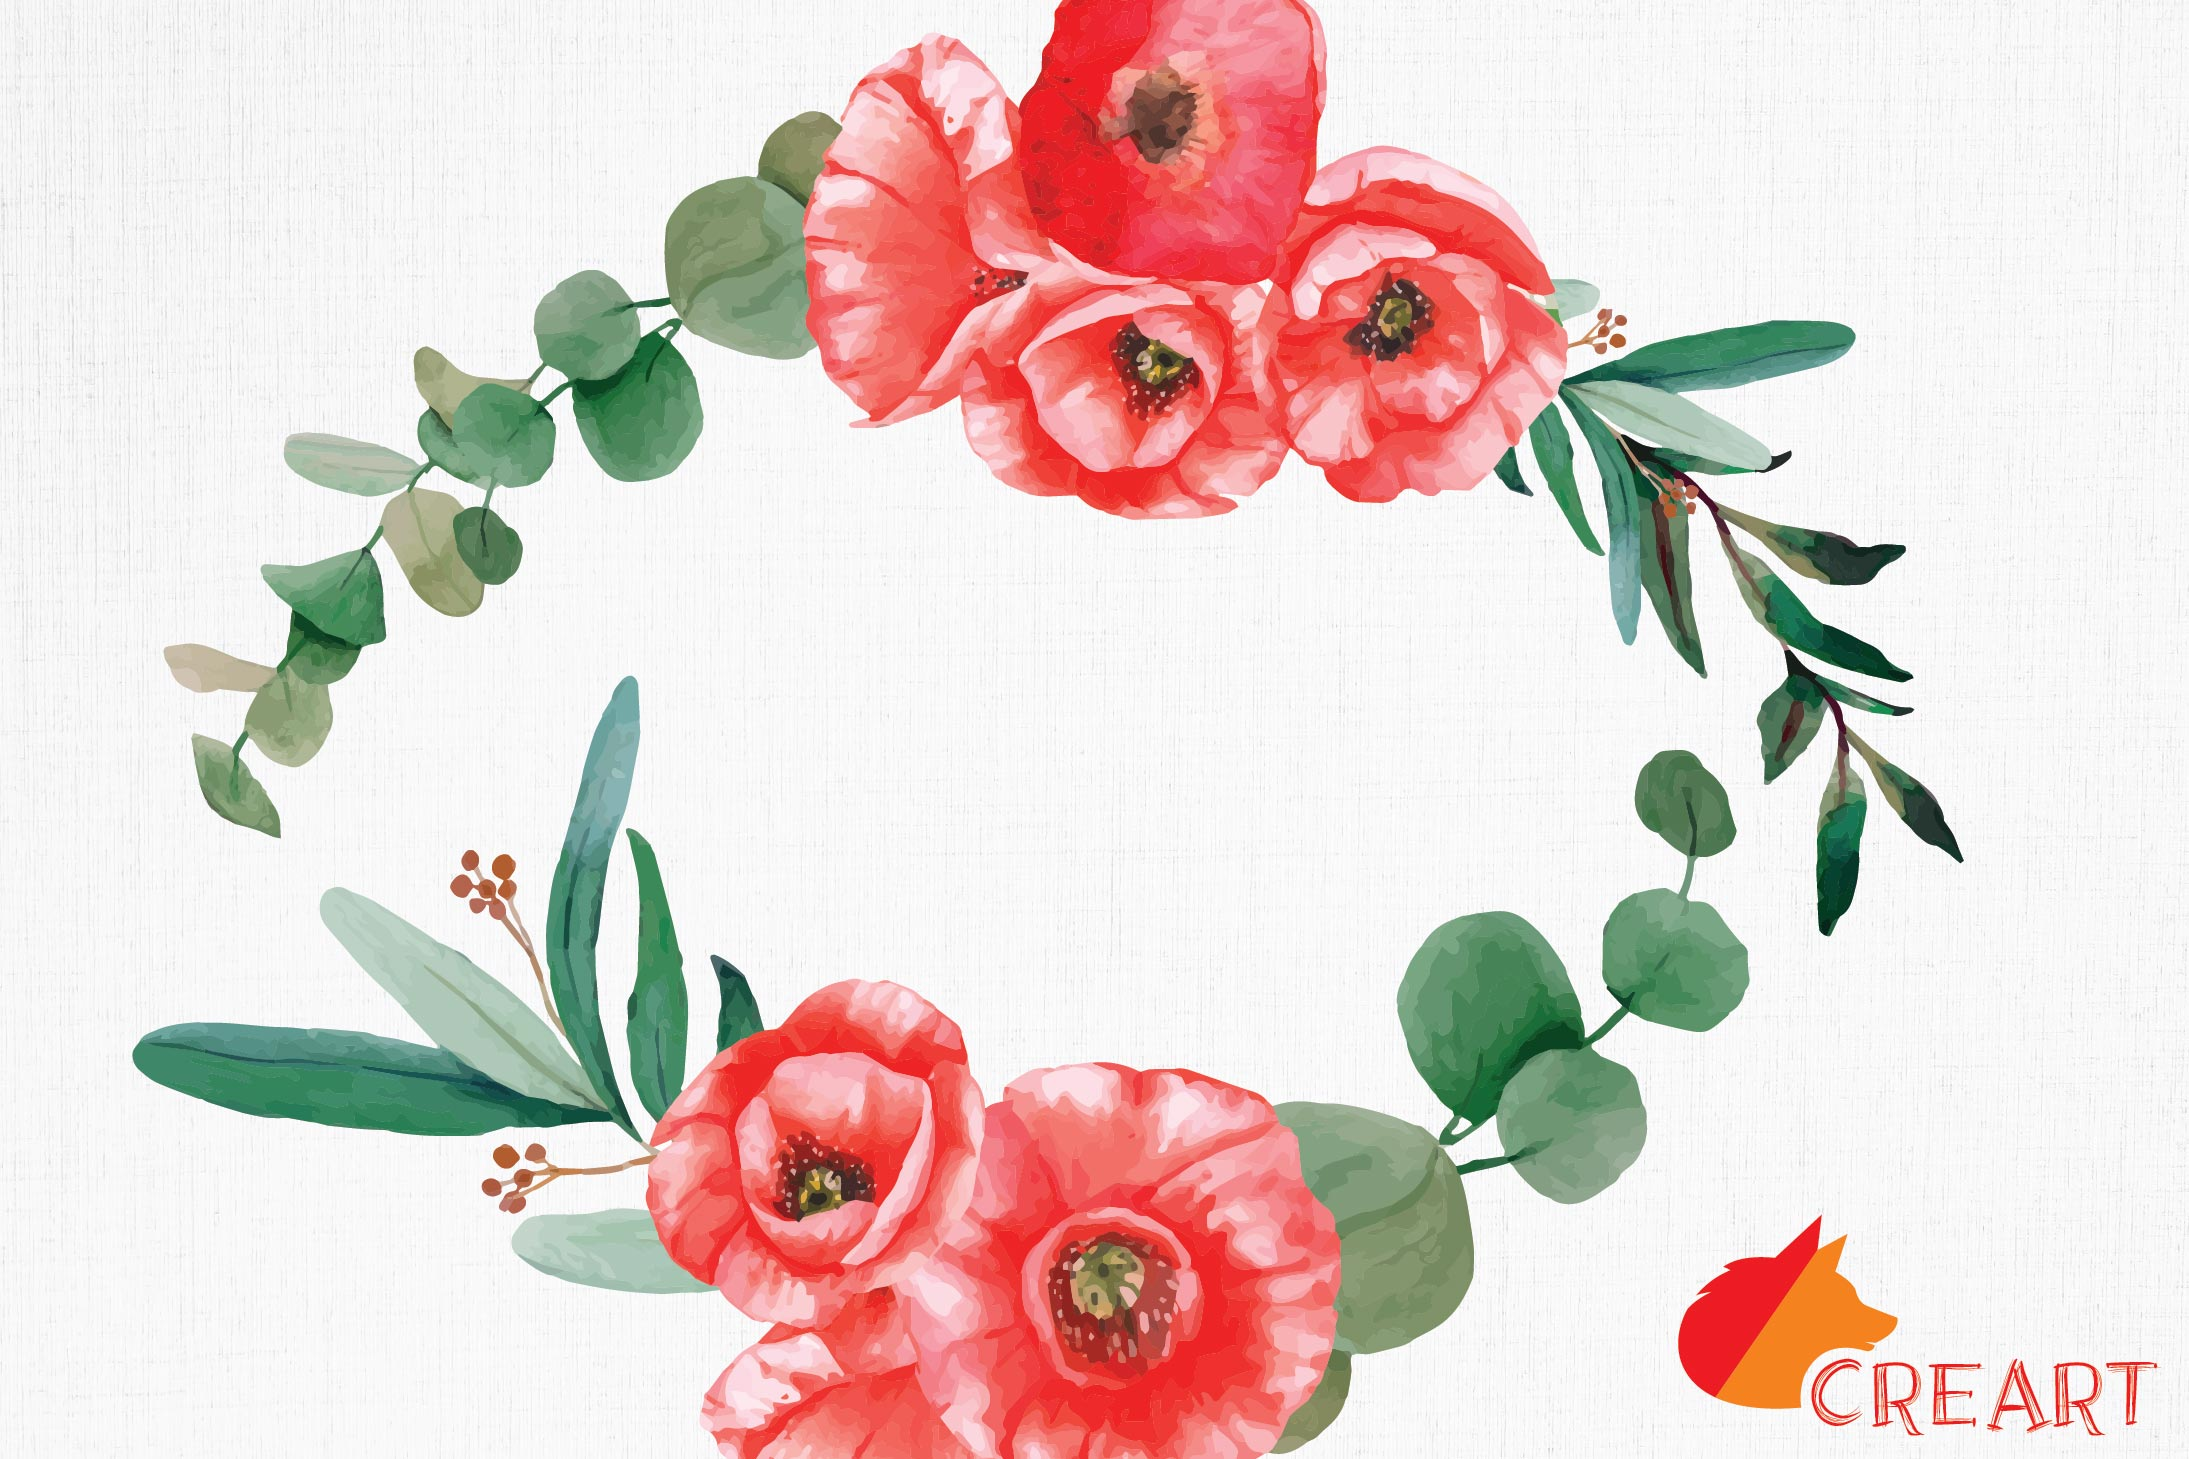 Red poppies floral watercolor wedding bouquets, floral decor example image 10